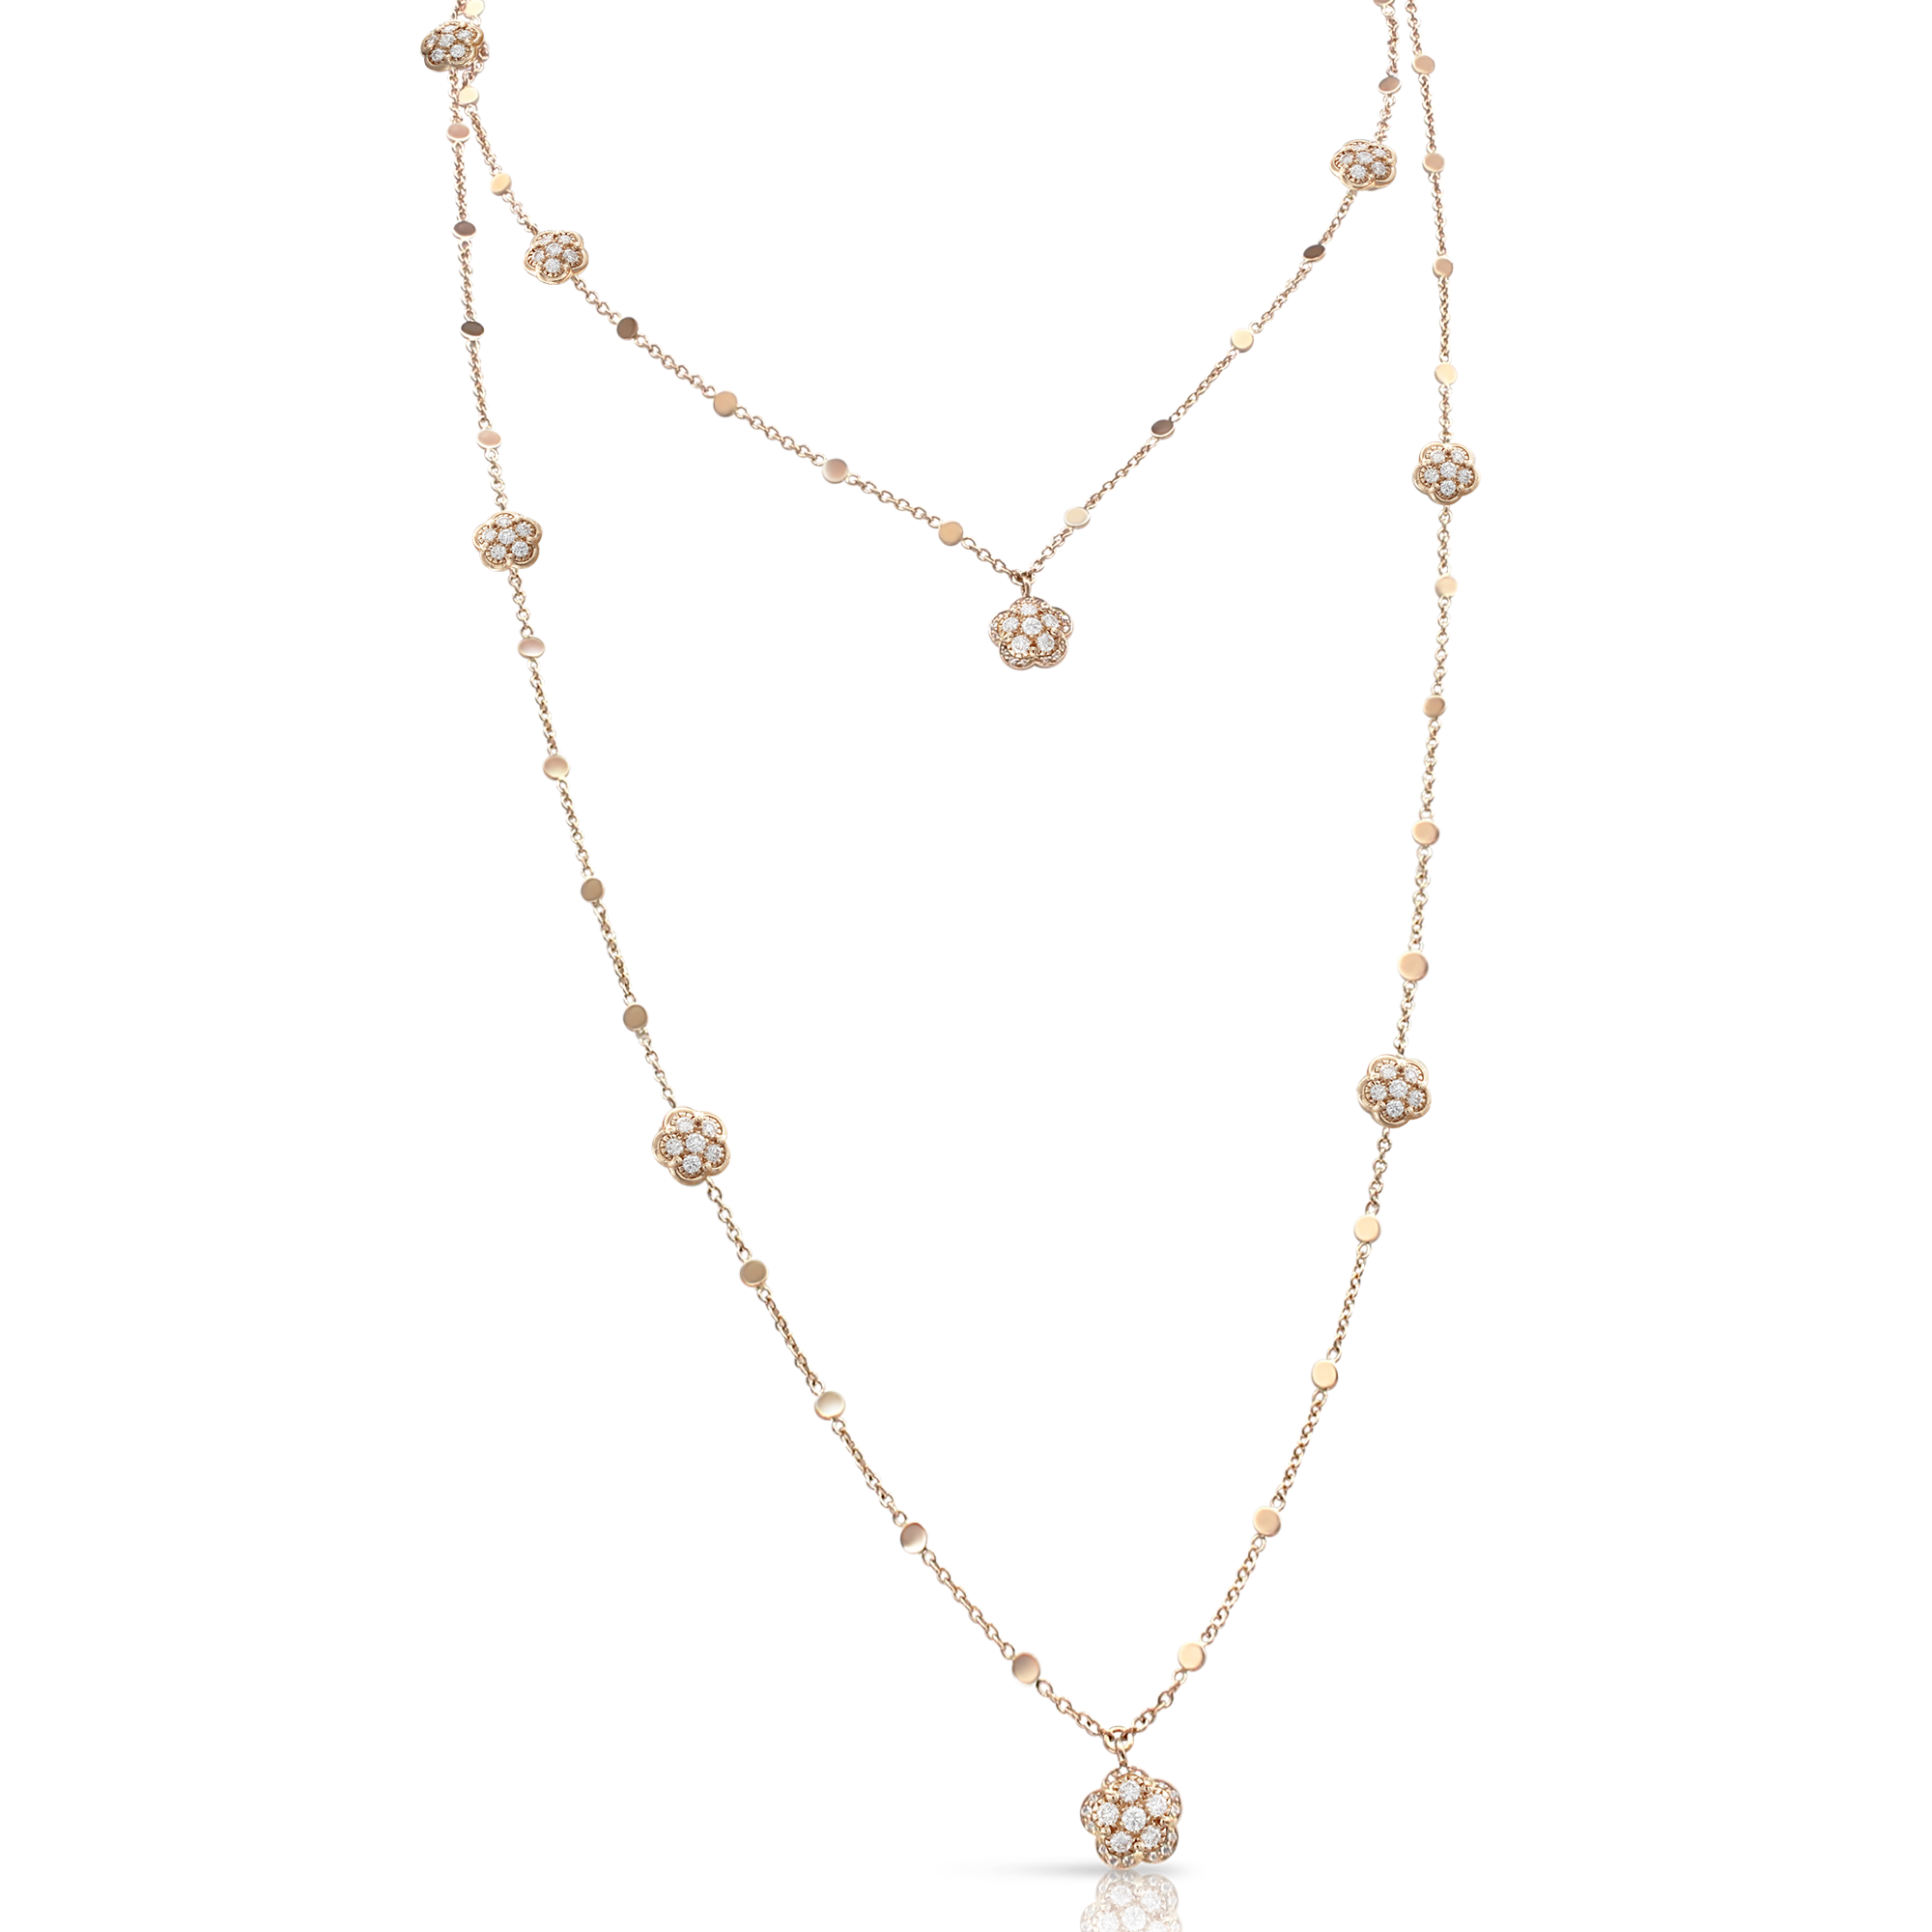 NEW 18k Rose Gold Figlia dei Fiori Necklace with White and Champagne Diamonds